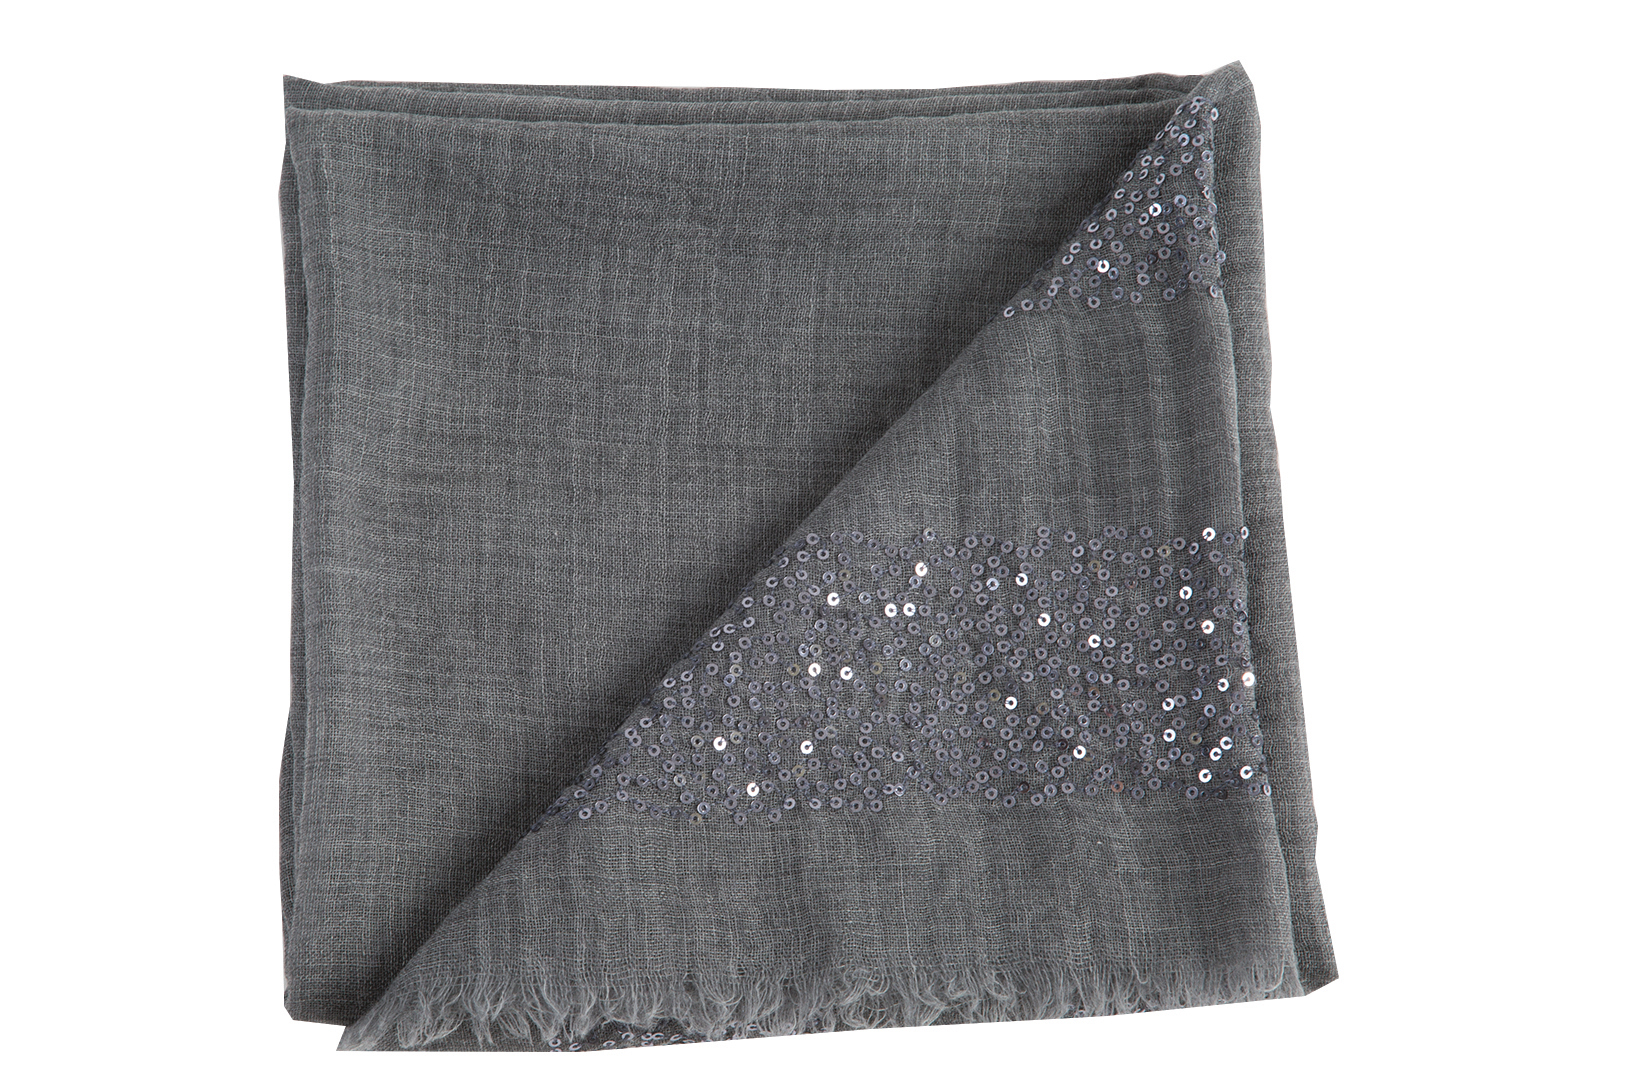 Small sequin pashmina, $99 at Out of Hand